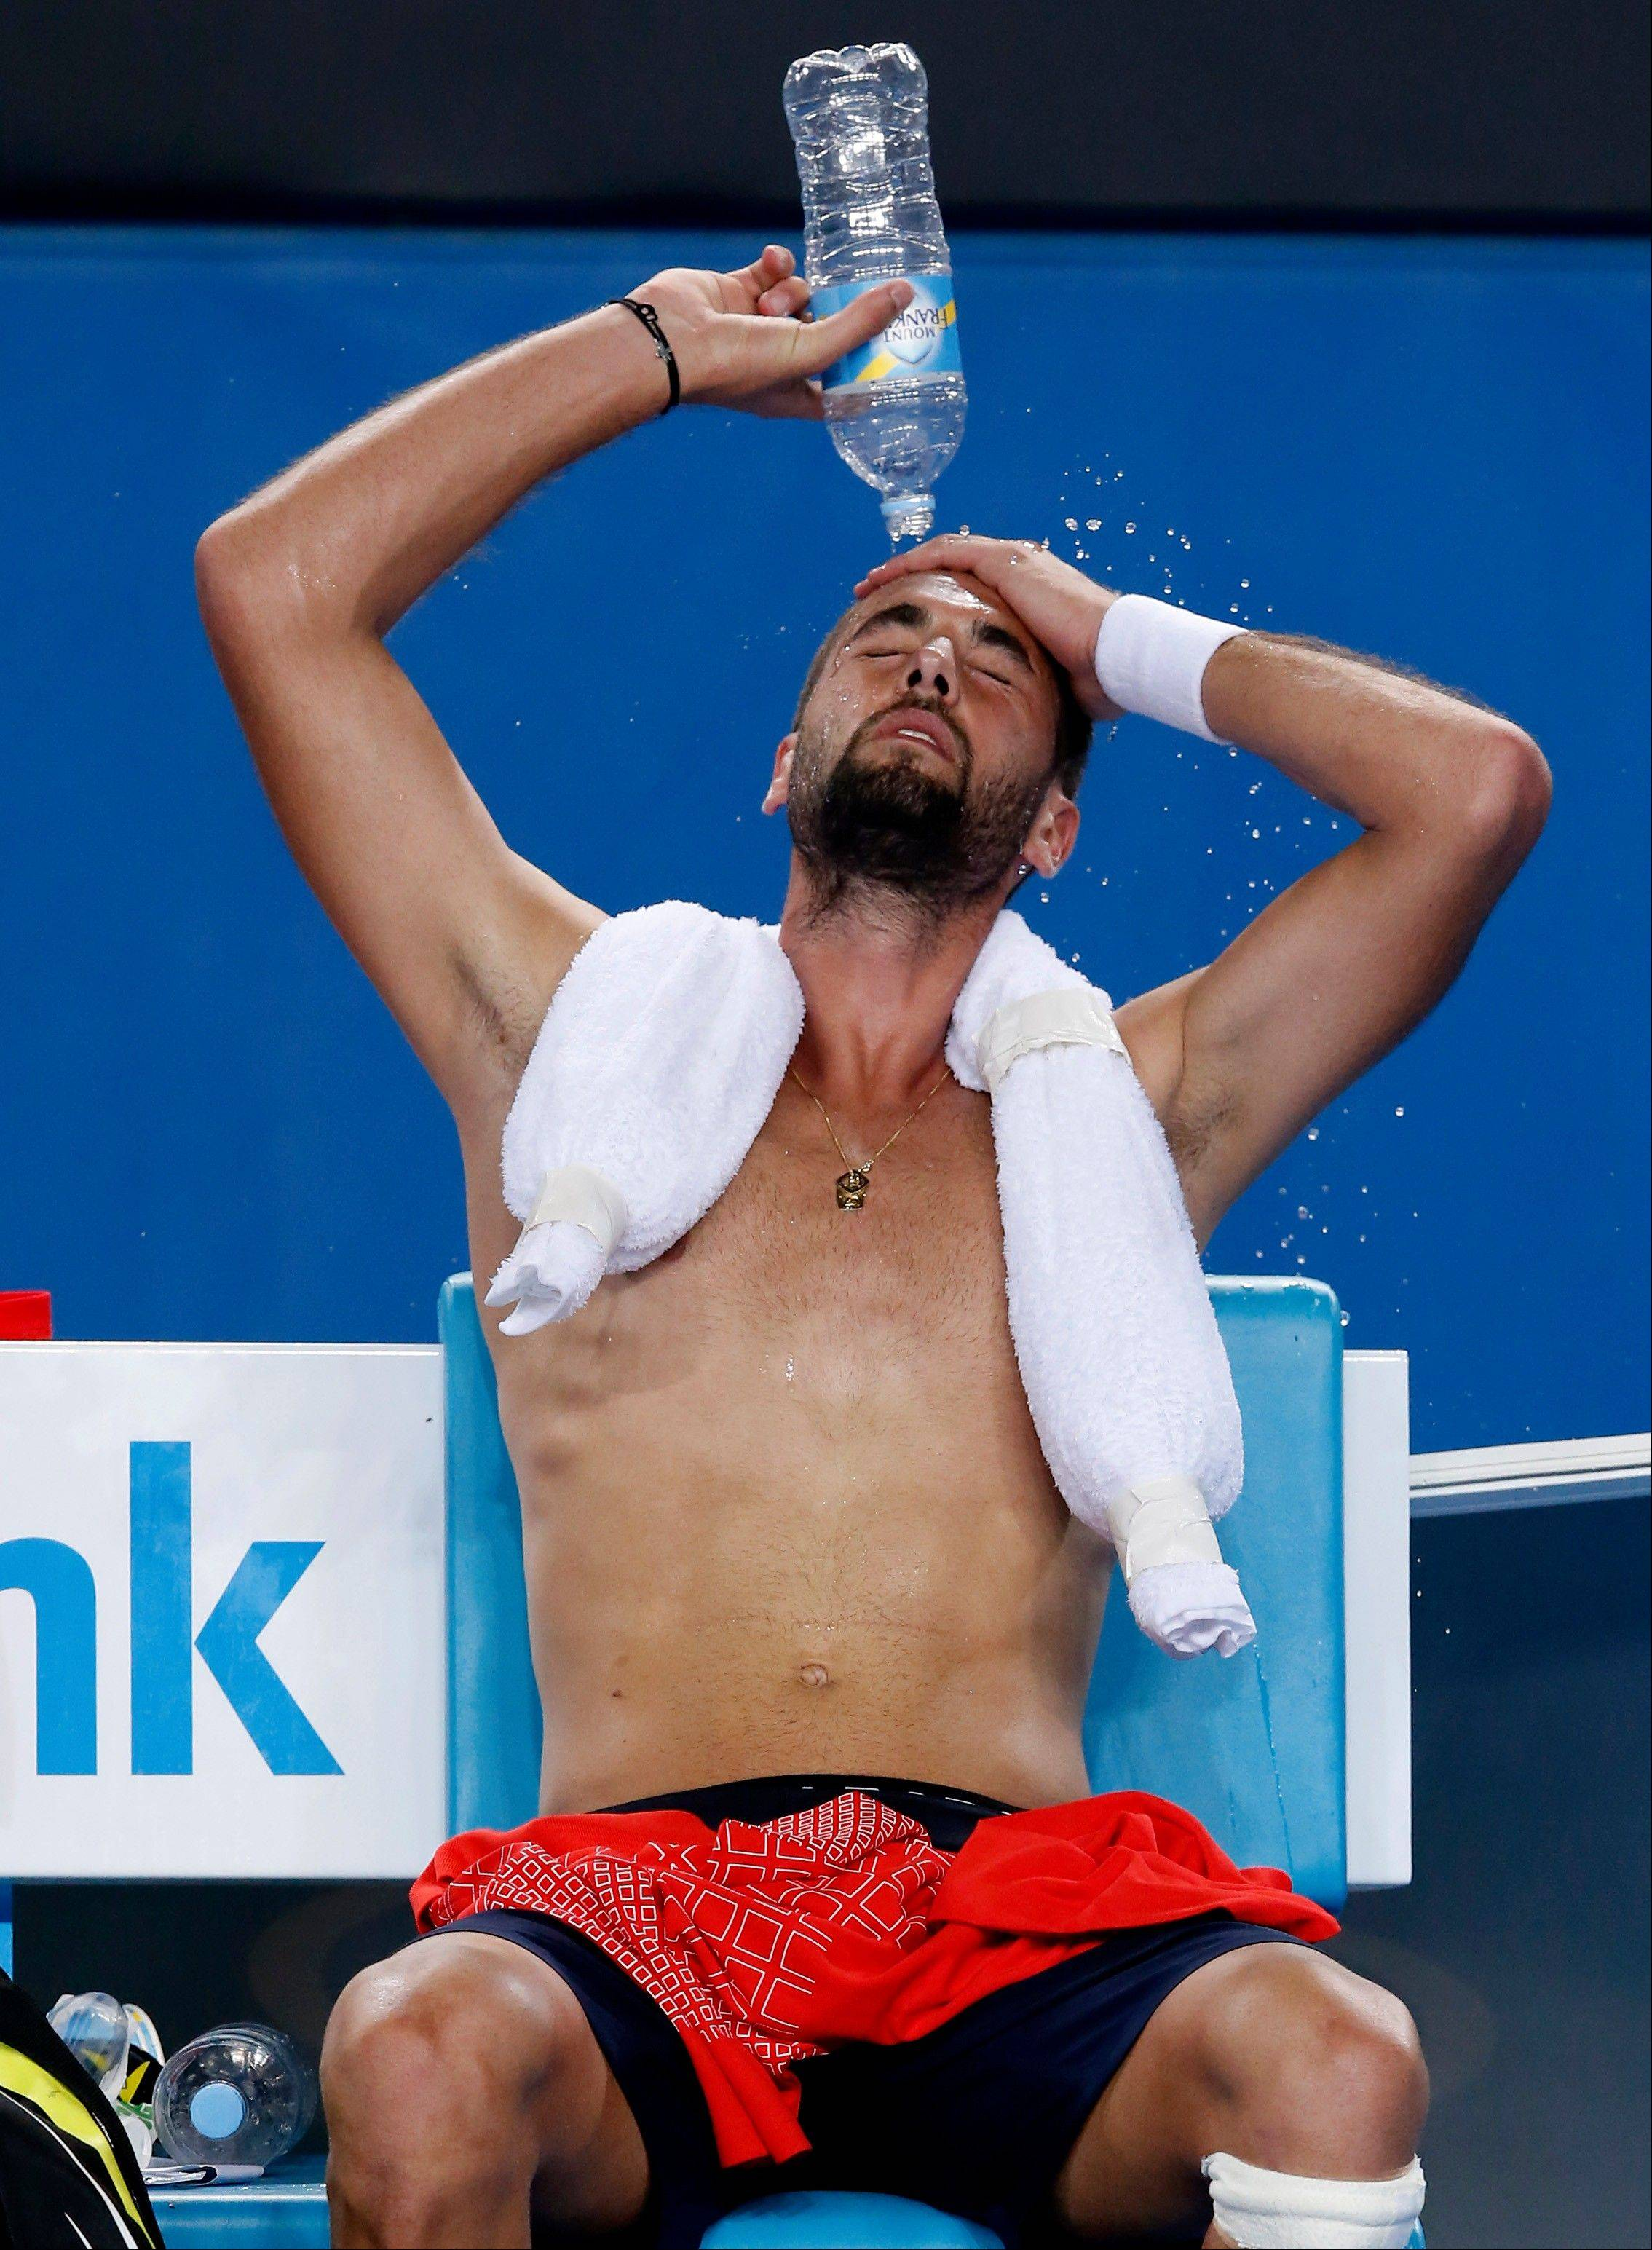 Benoit Paire of France pours water over his face during a break in his second round match against Nick Kyrgios of Australia at the Australian Open tennis championship in Melbourne, Australia, Thursday, Jan. 16, 2014.